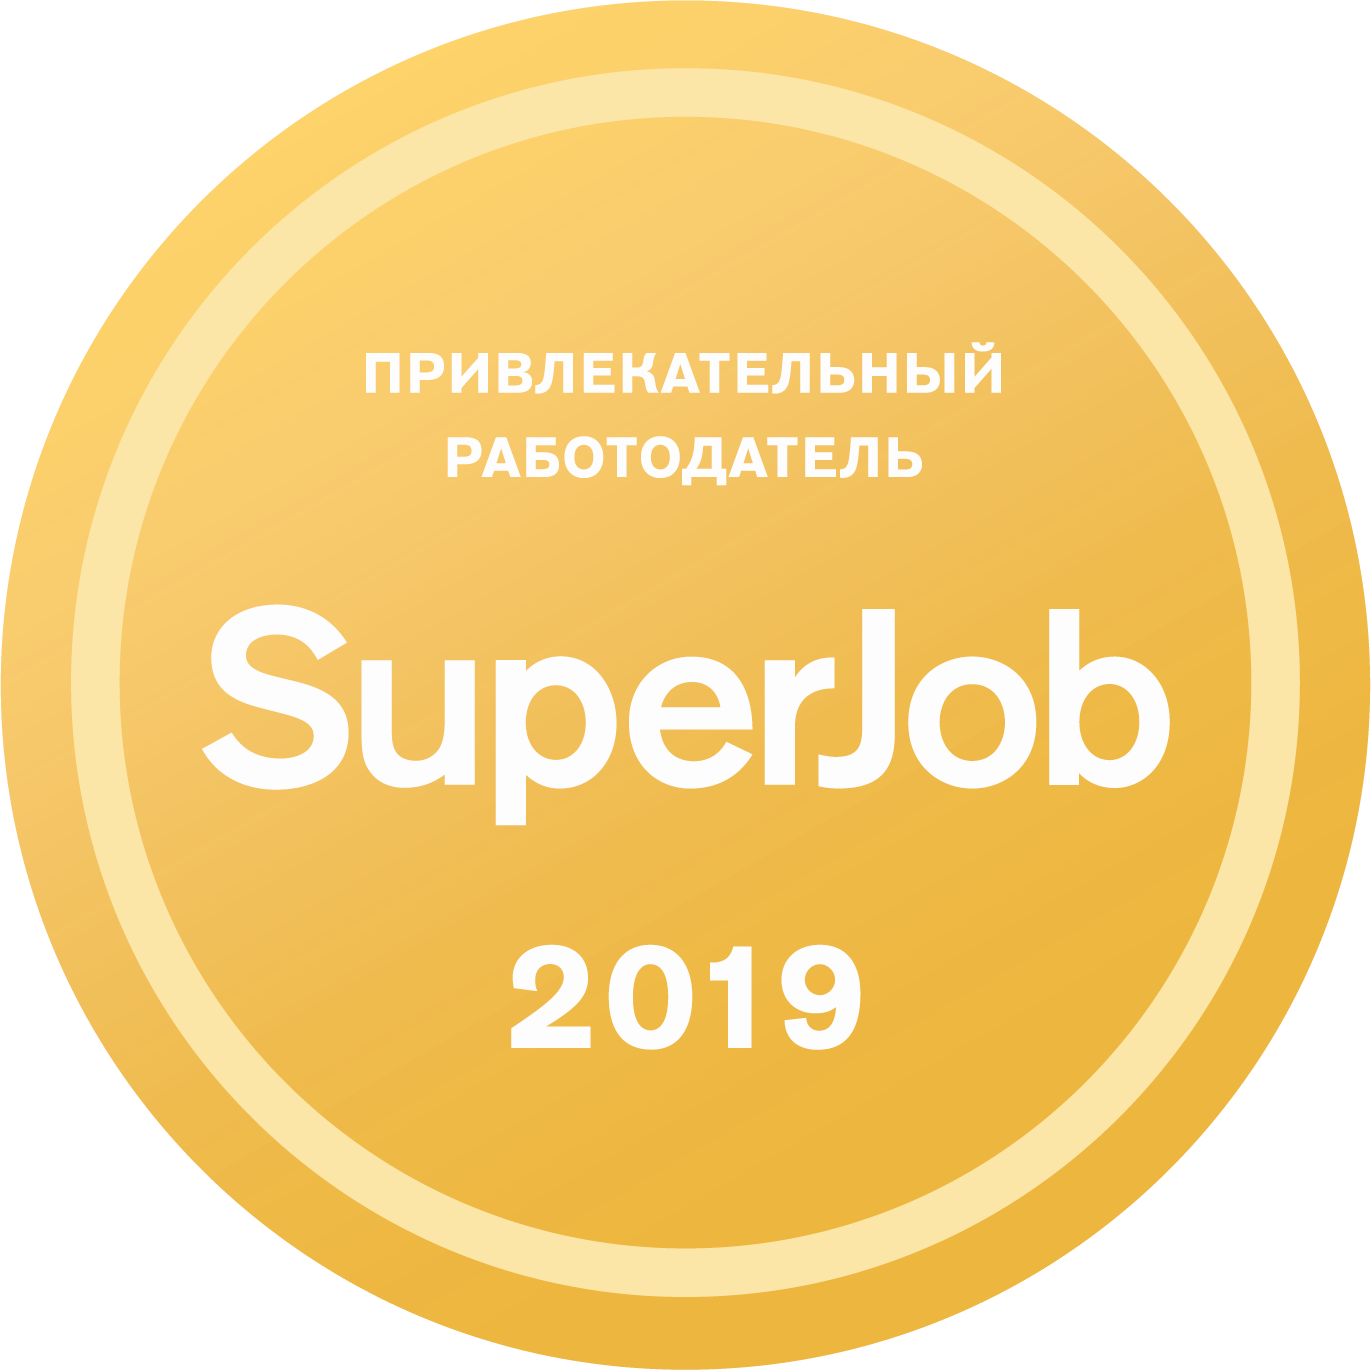 Repropark is an attractive employer according to SuperJob